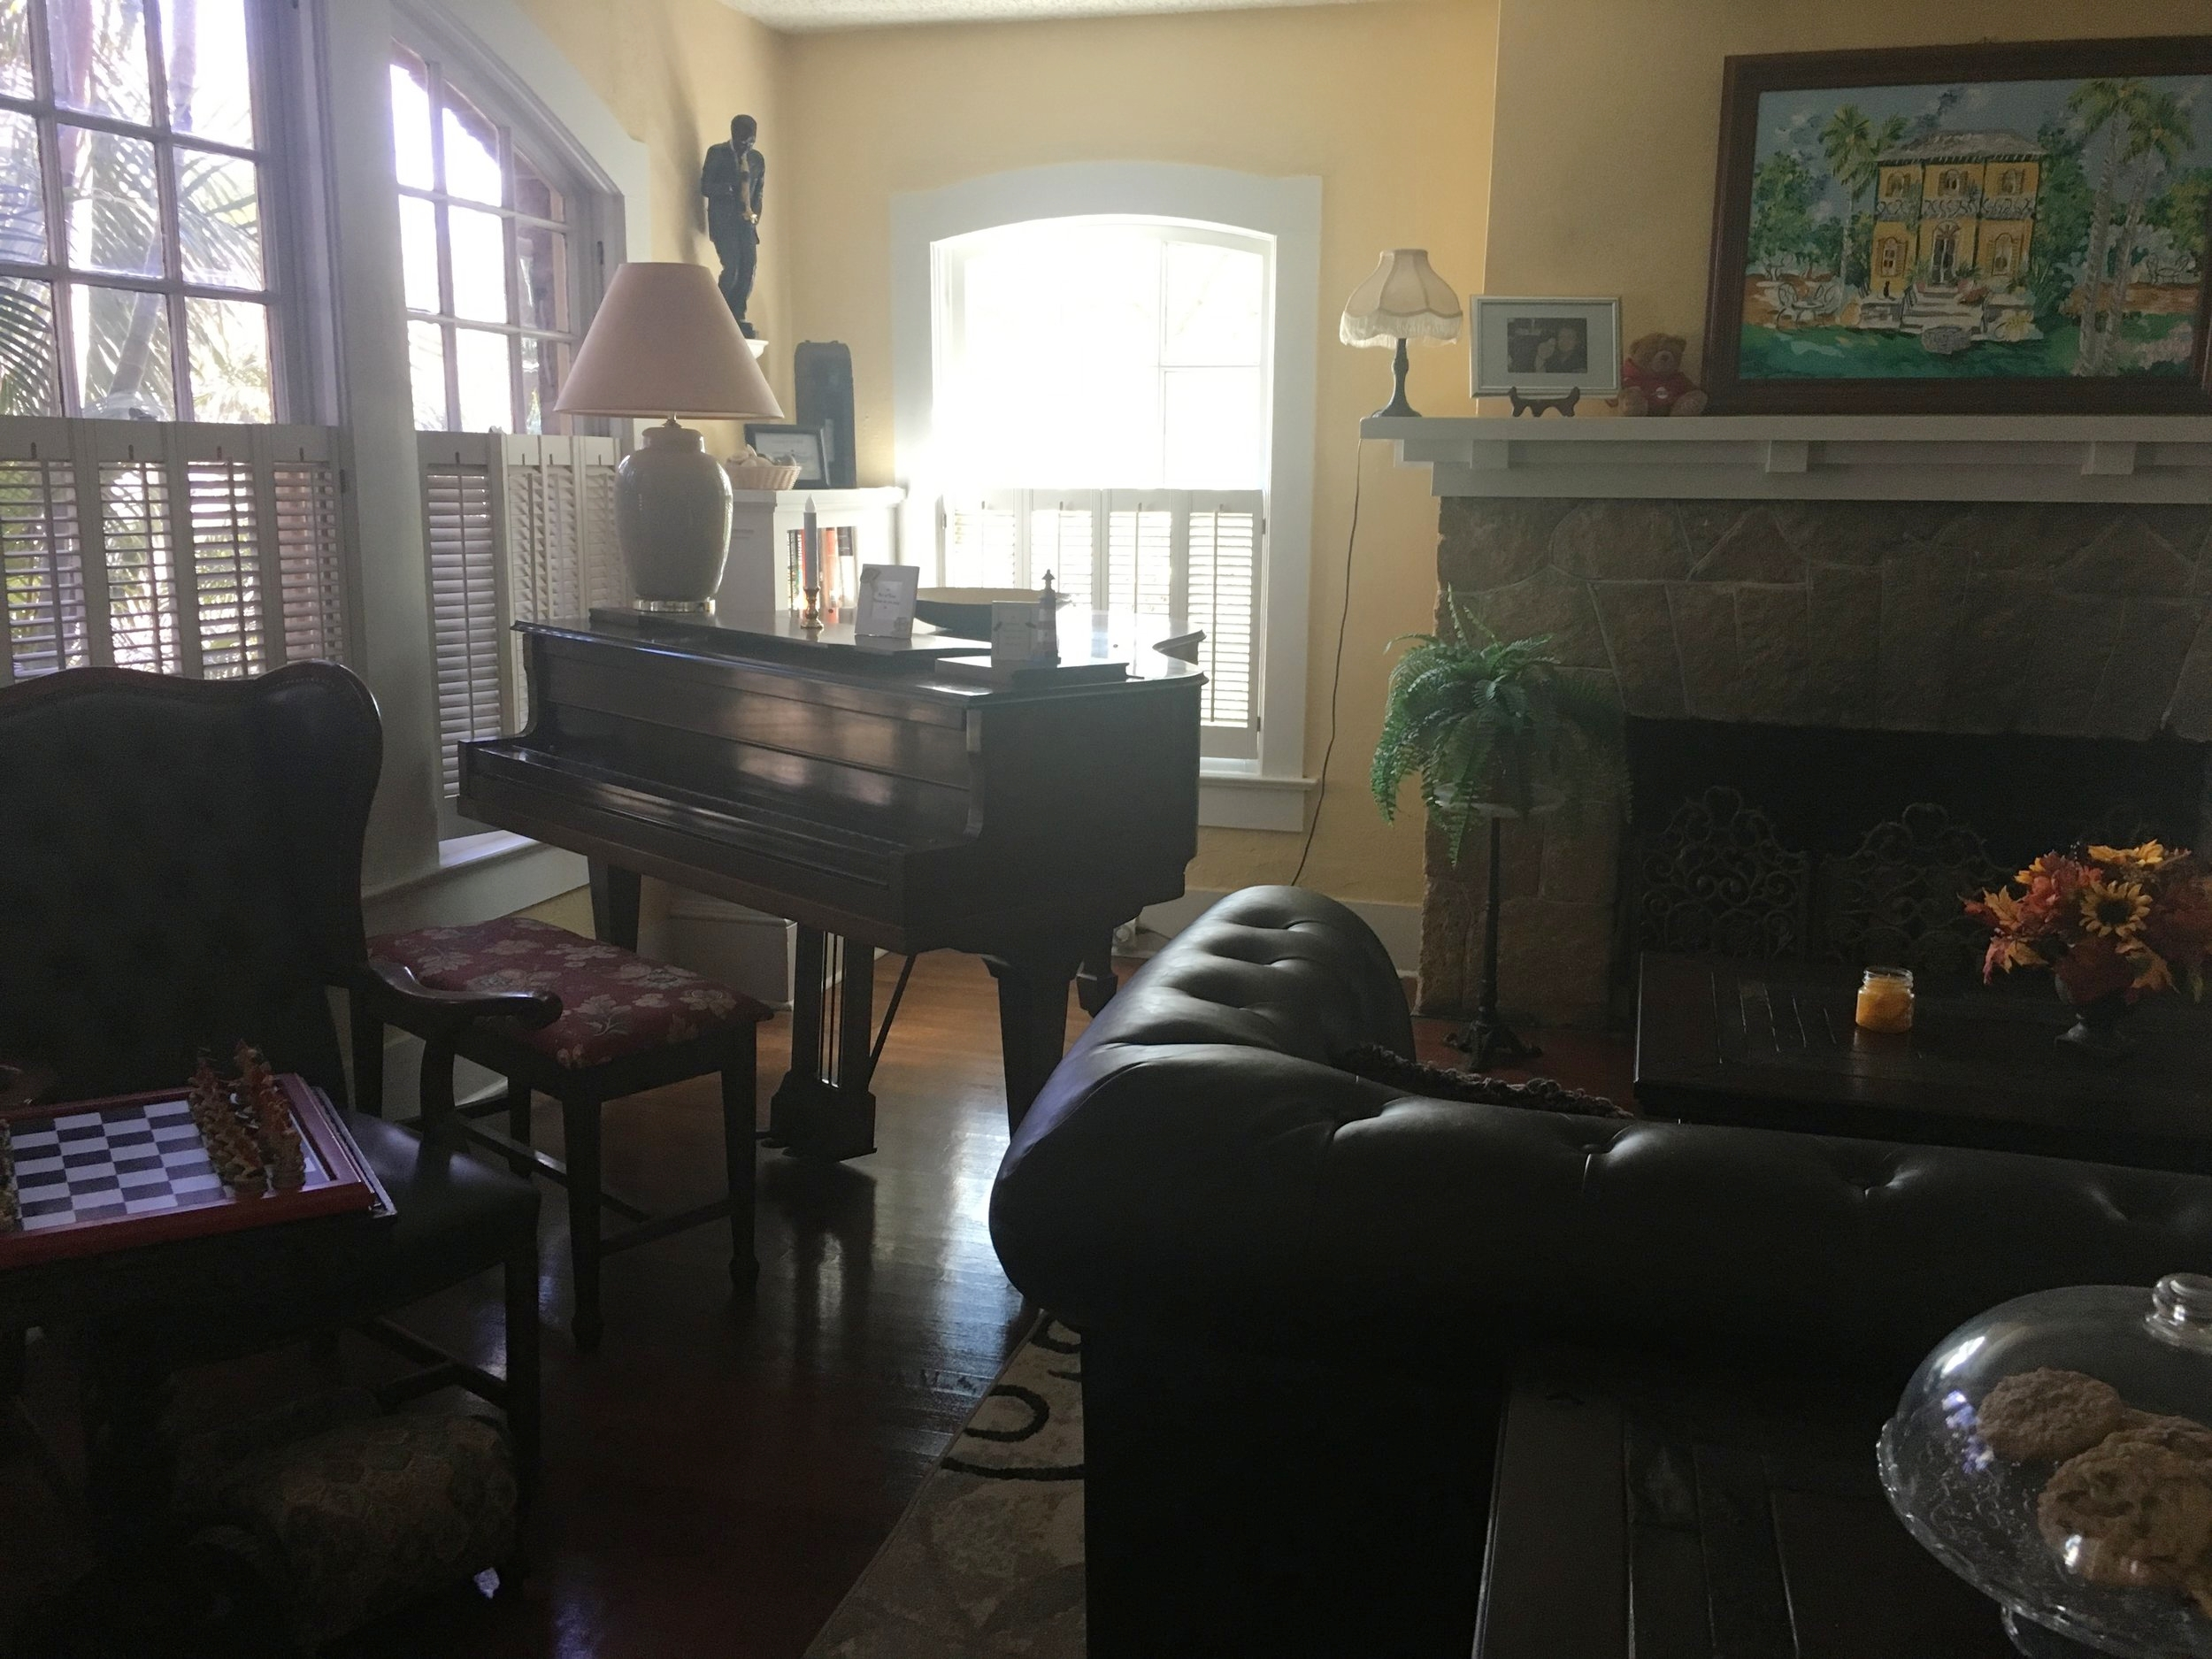 Cookies sat on a covered platter in the sitting area behind a couch that faced the fireplace, a piano rested in the corner of the room, and a door on the opposite side led to a sunroom.